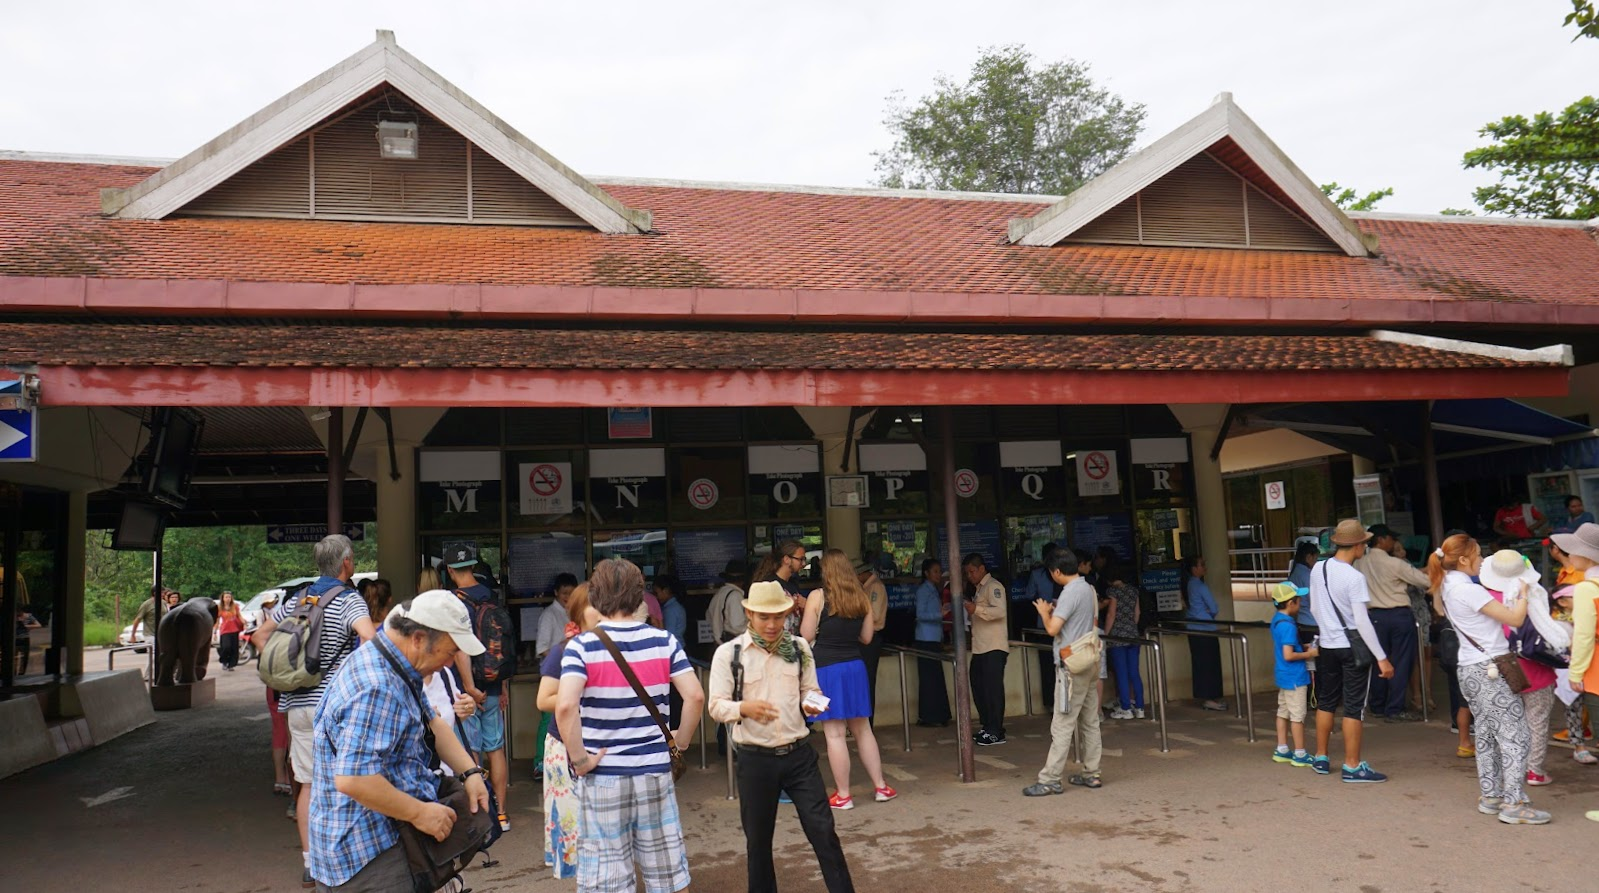 The ticketing booth at the entrance to Angkor Wat